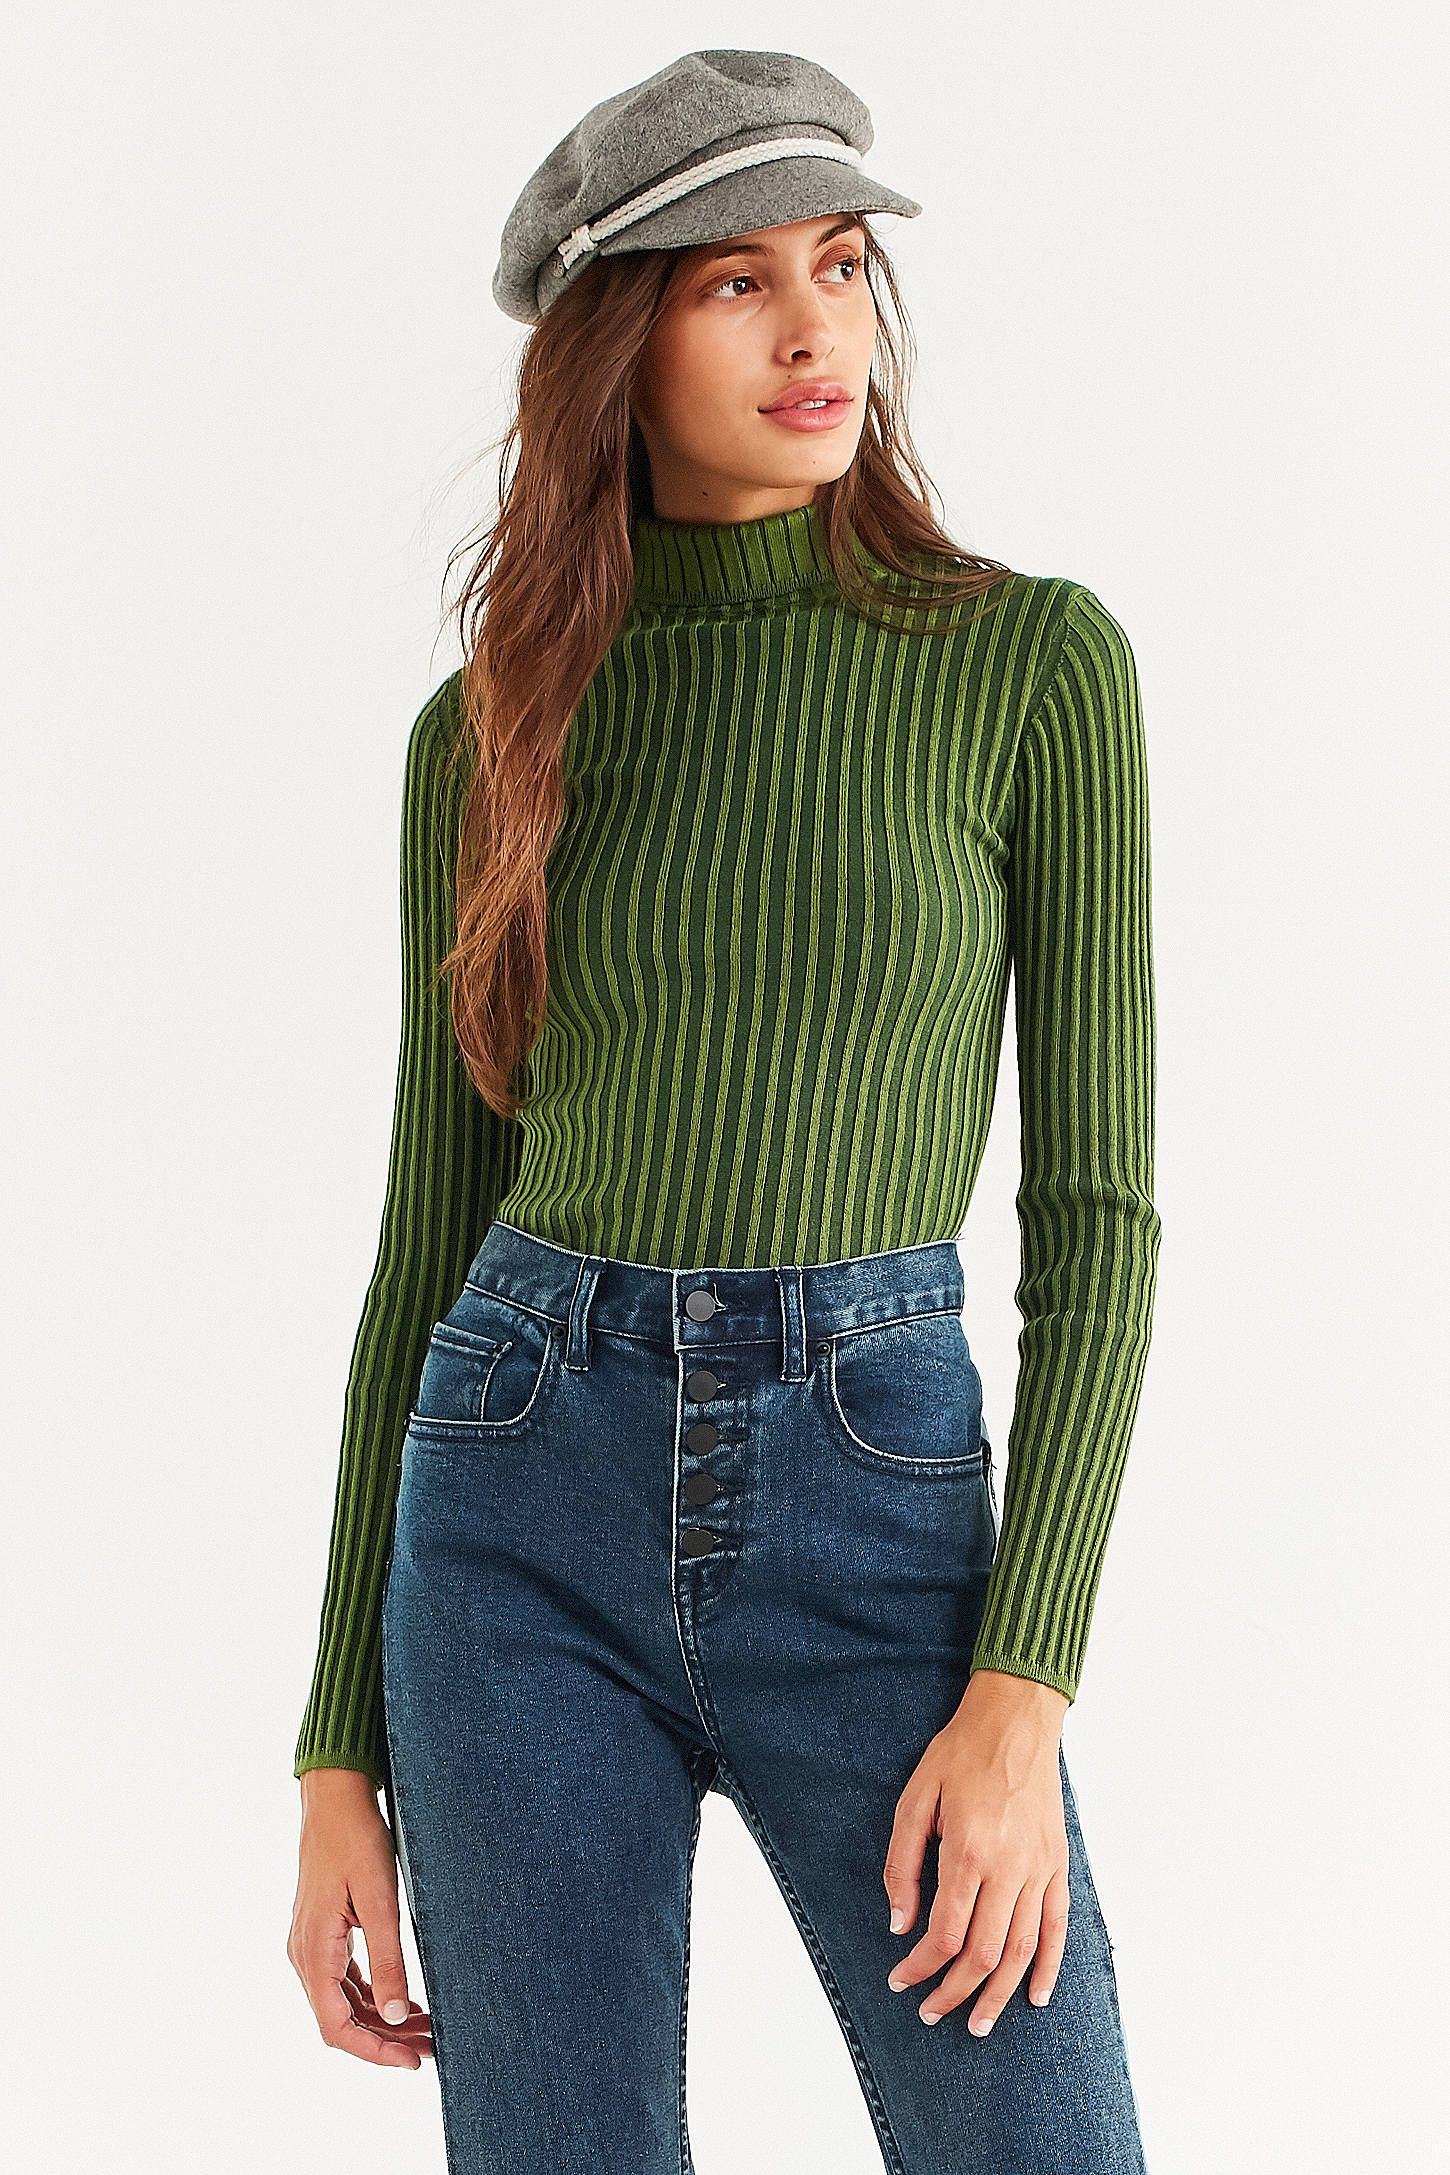 ae8192b53ea849 Shop Silence + Noise Macy Ribbed Knit Turtleneck Sweater at Urban  Outfitters today. We carry all the latest styles